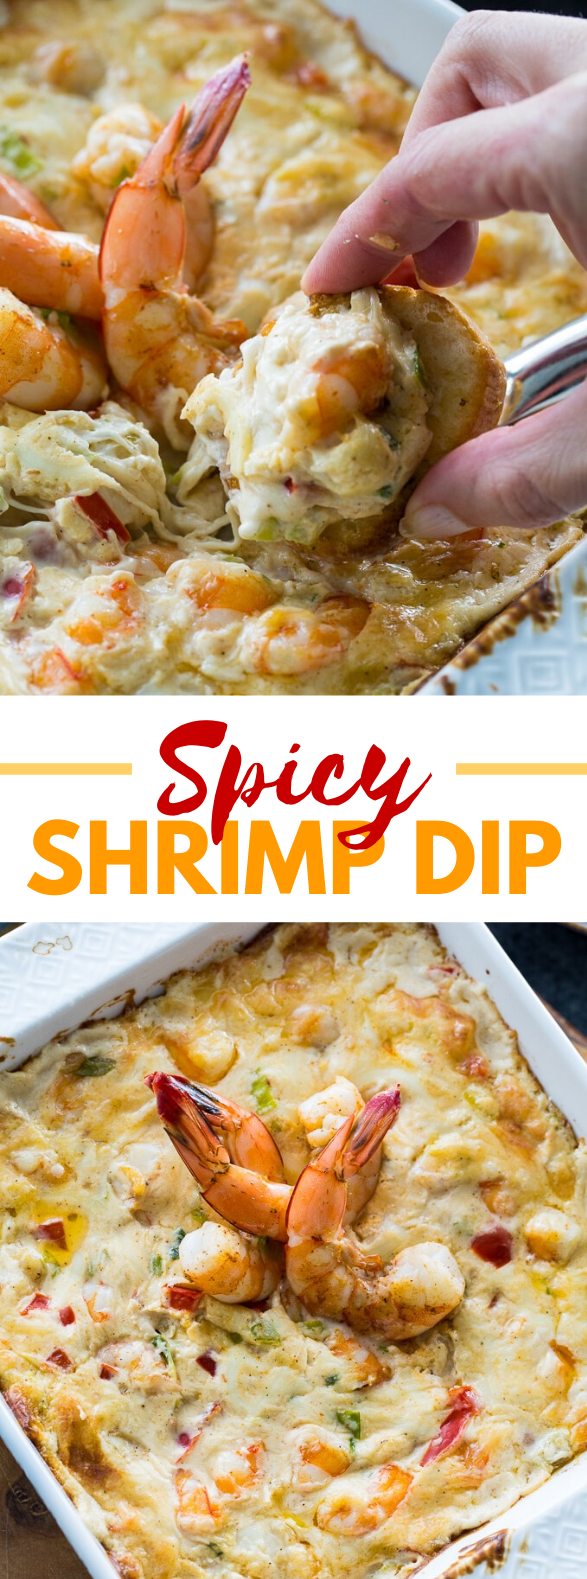 Spicy Shrimp Dip #appetizers #lunch